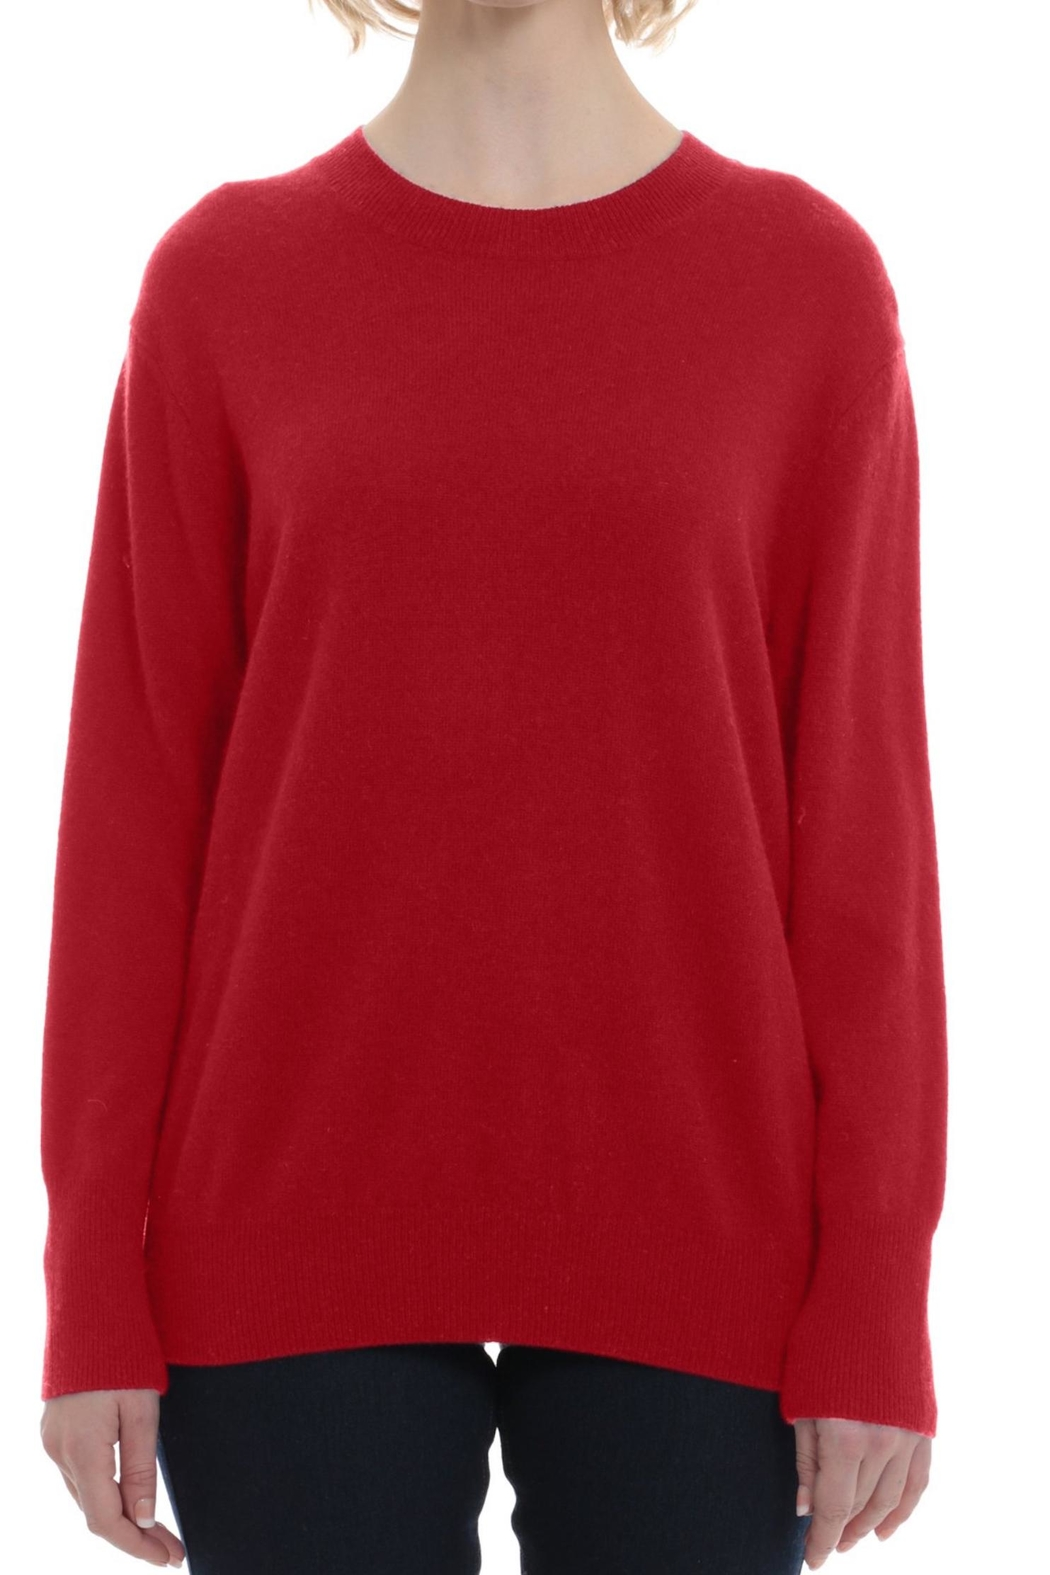 Minnie Rose Red Crew Sweater - Front Cropped Image